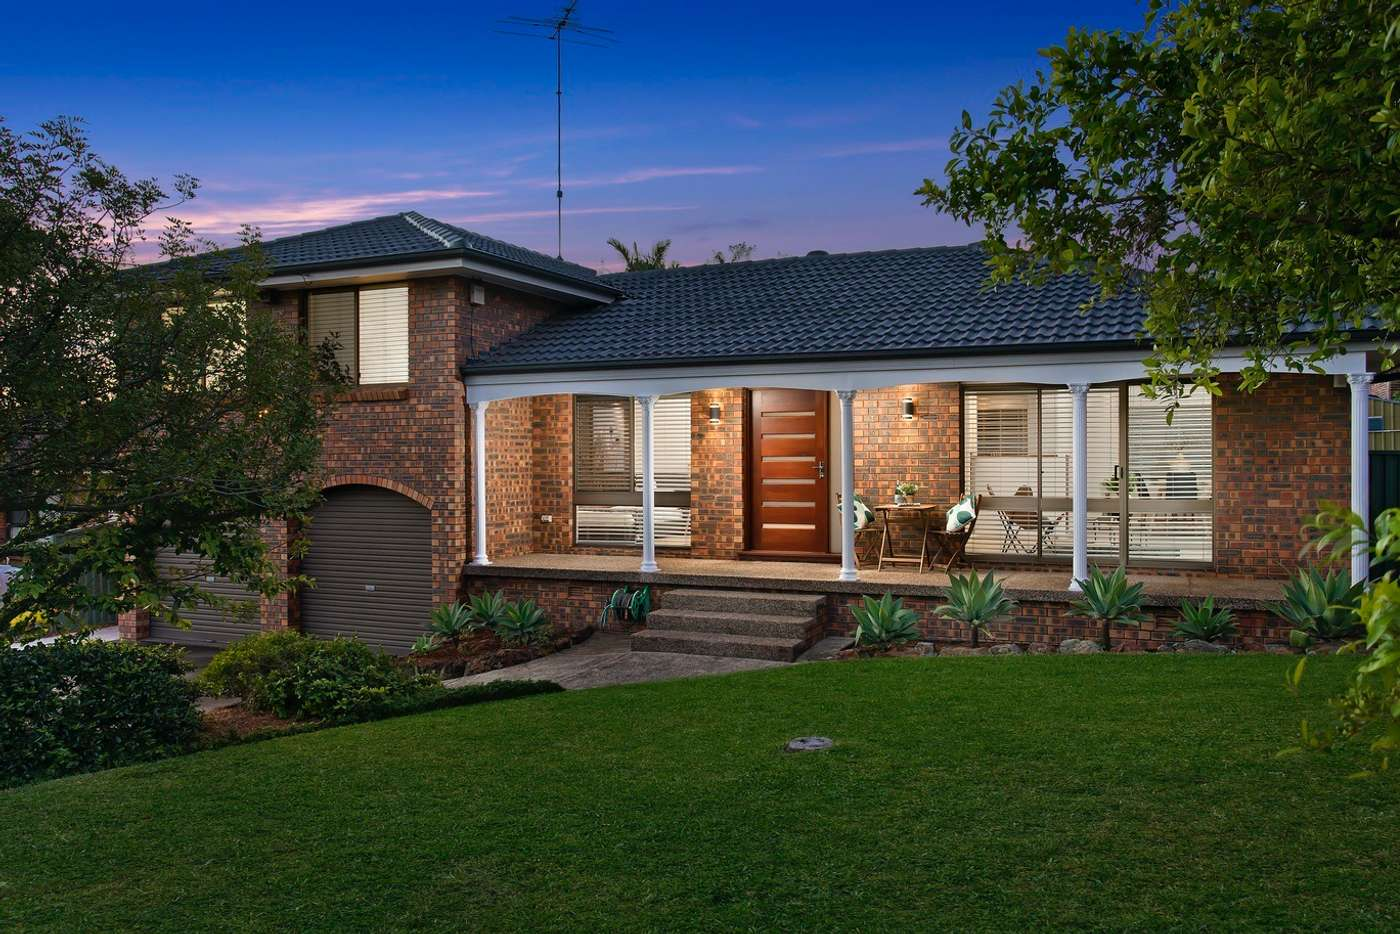 Main view of Homely house listing, 30 Wrights Road, Kellyville NSW 2155